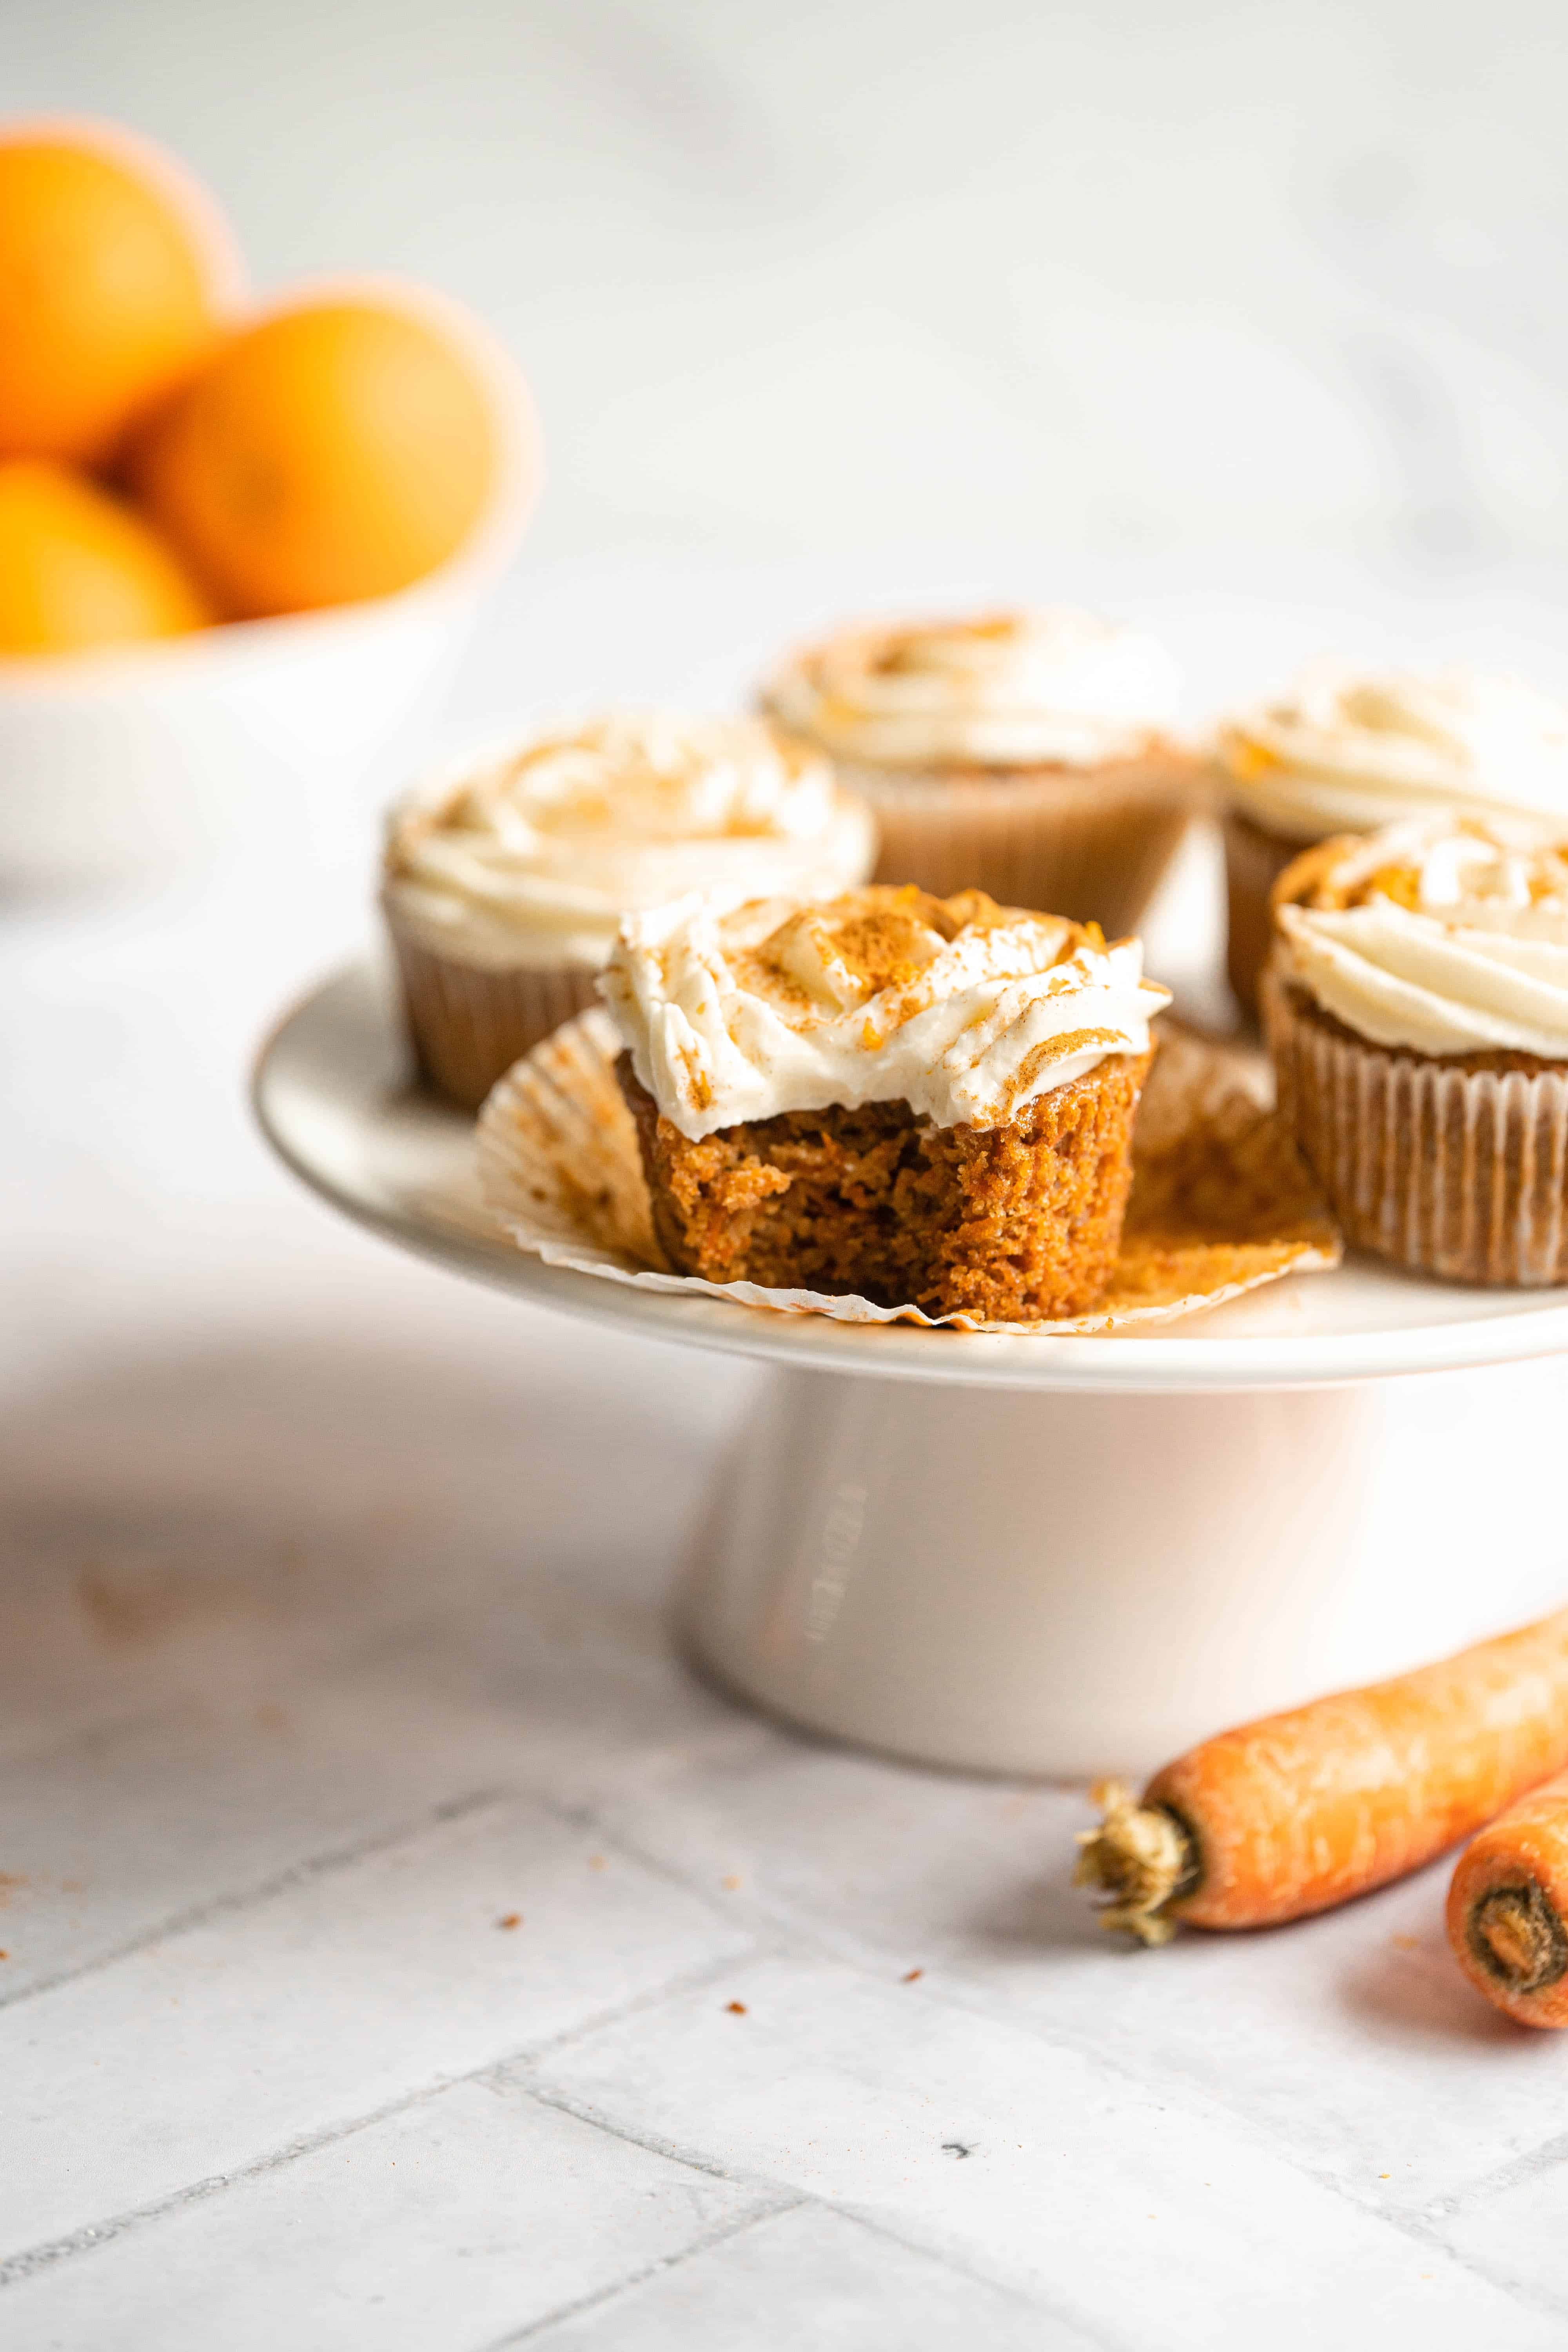 A bite taken out of a carrot cupcake with orange cream cheese frosting